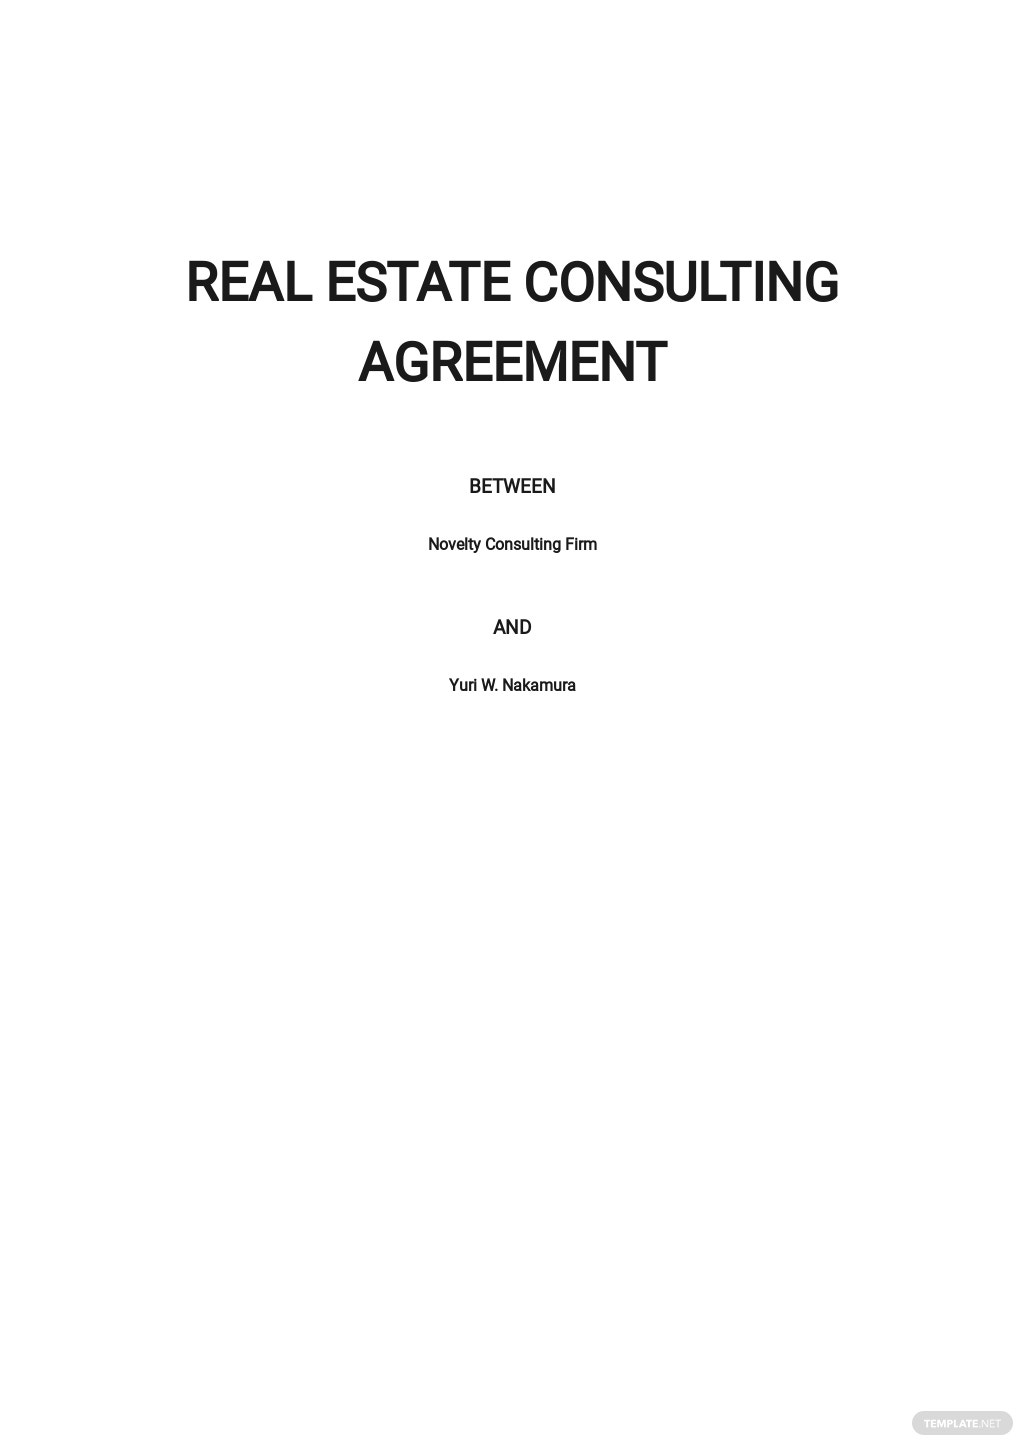 Real Estate Consulting Agreement Template.jpe